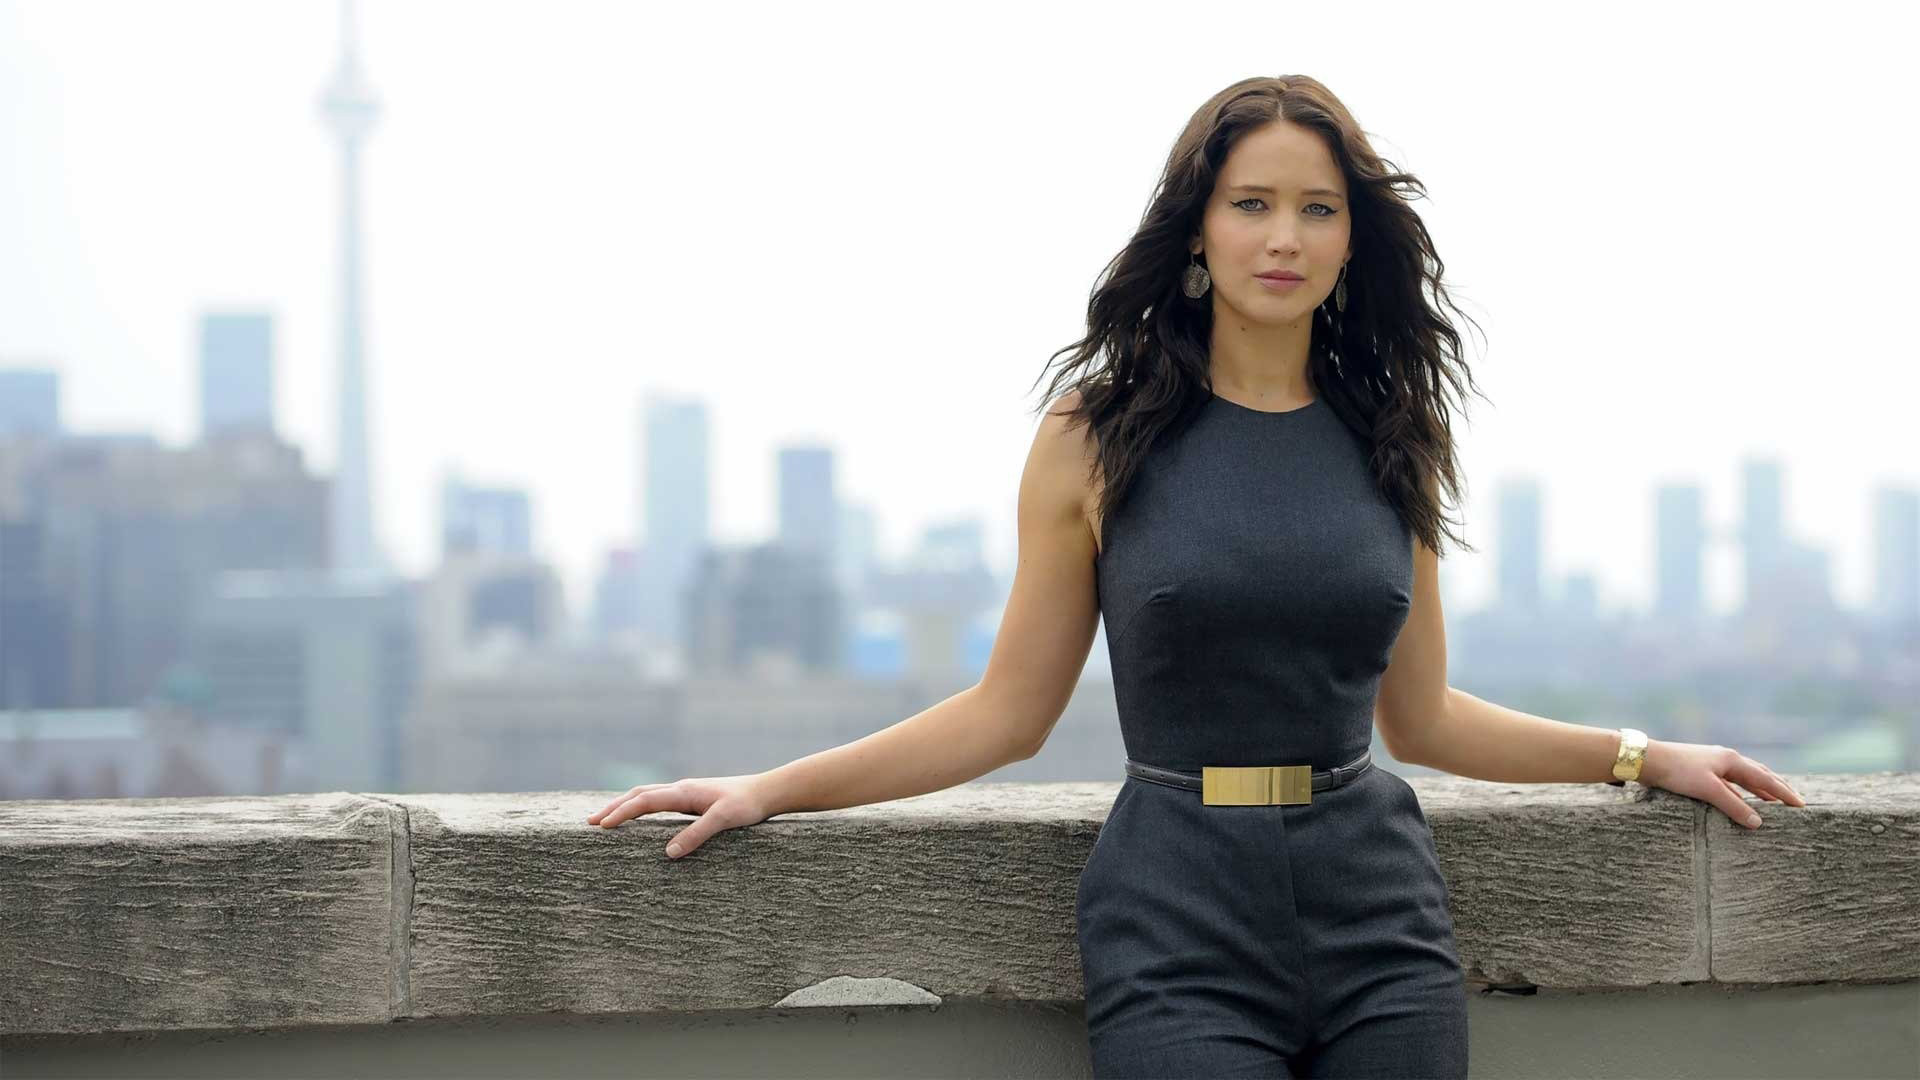 Awesome Jennifer Lawrence free wallpaper ID:207731 for full hd PC